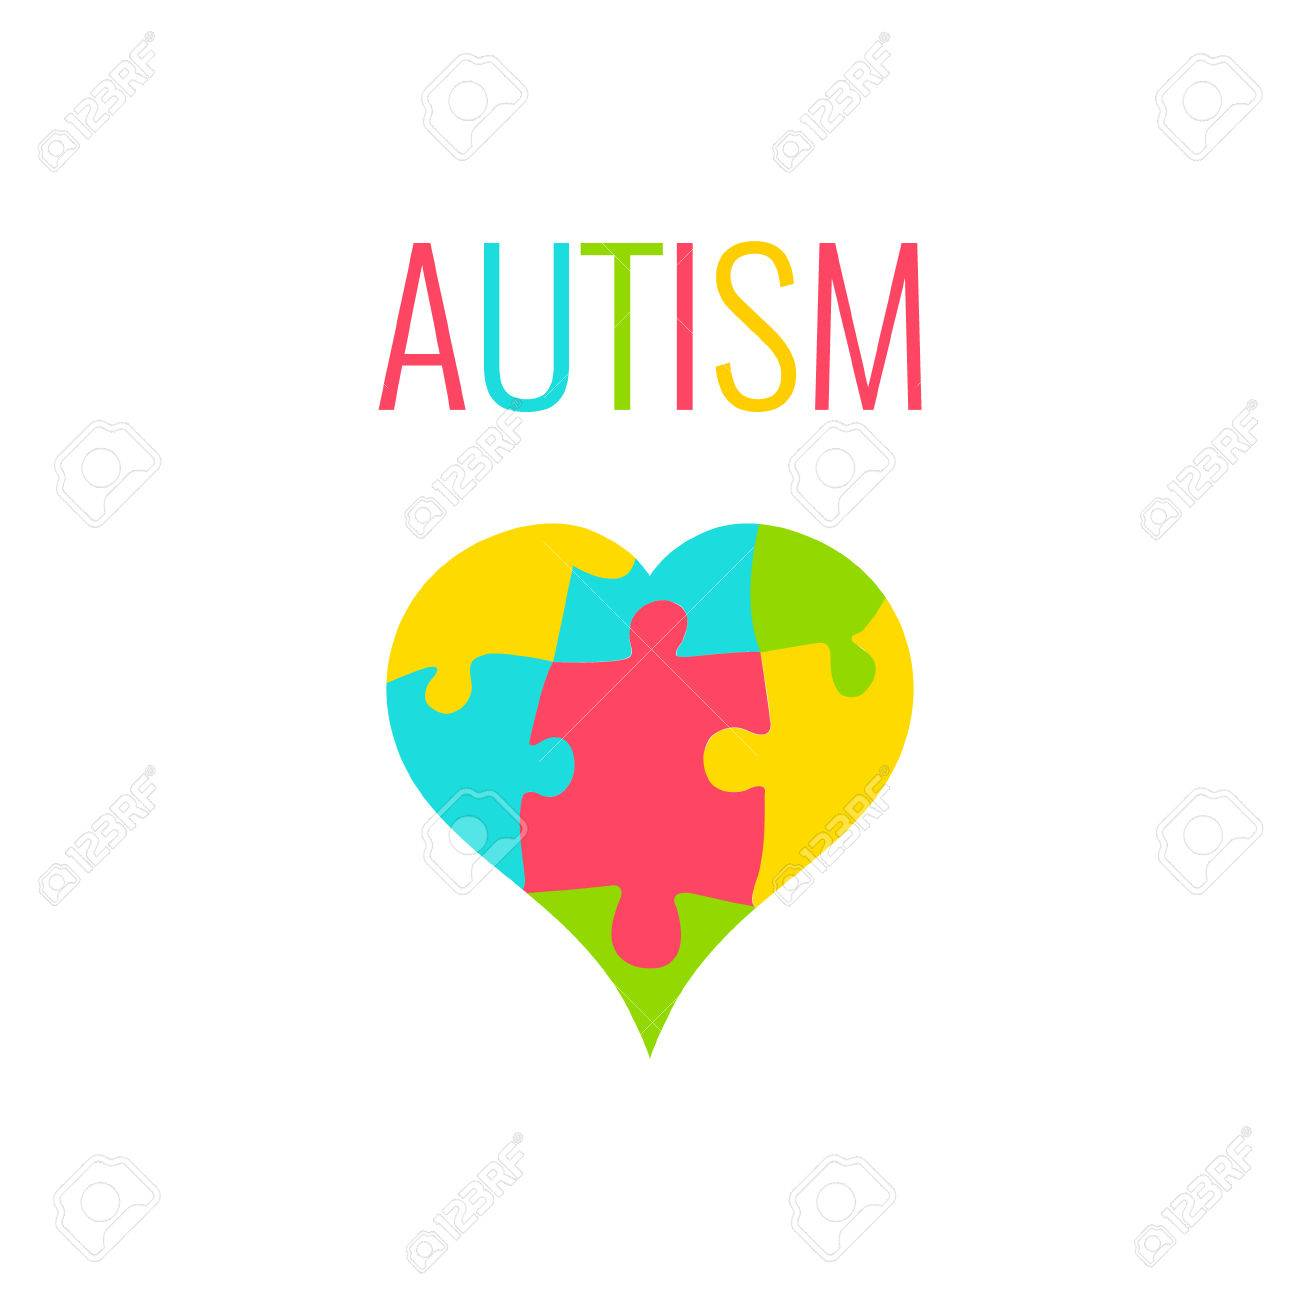 Autism Awareness Poster With Heart On White Background Heart